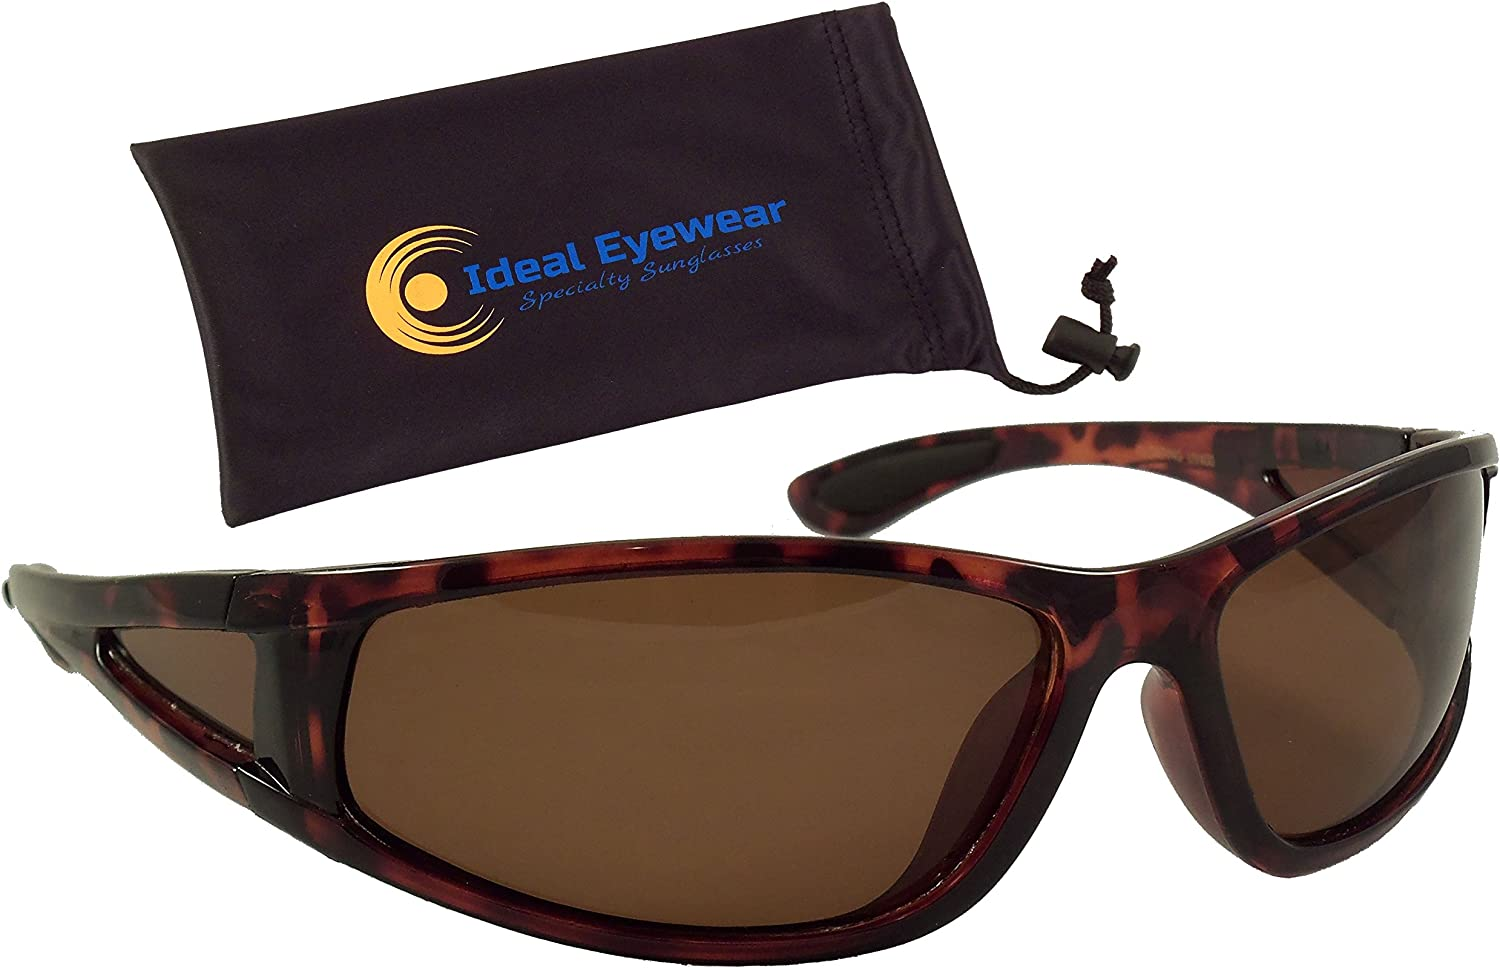 Ideal Eyewear Polarized Floating Sunglasses Great for Fishing, Boating, and Water Sports